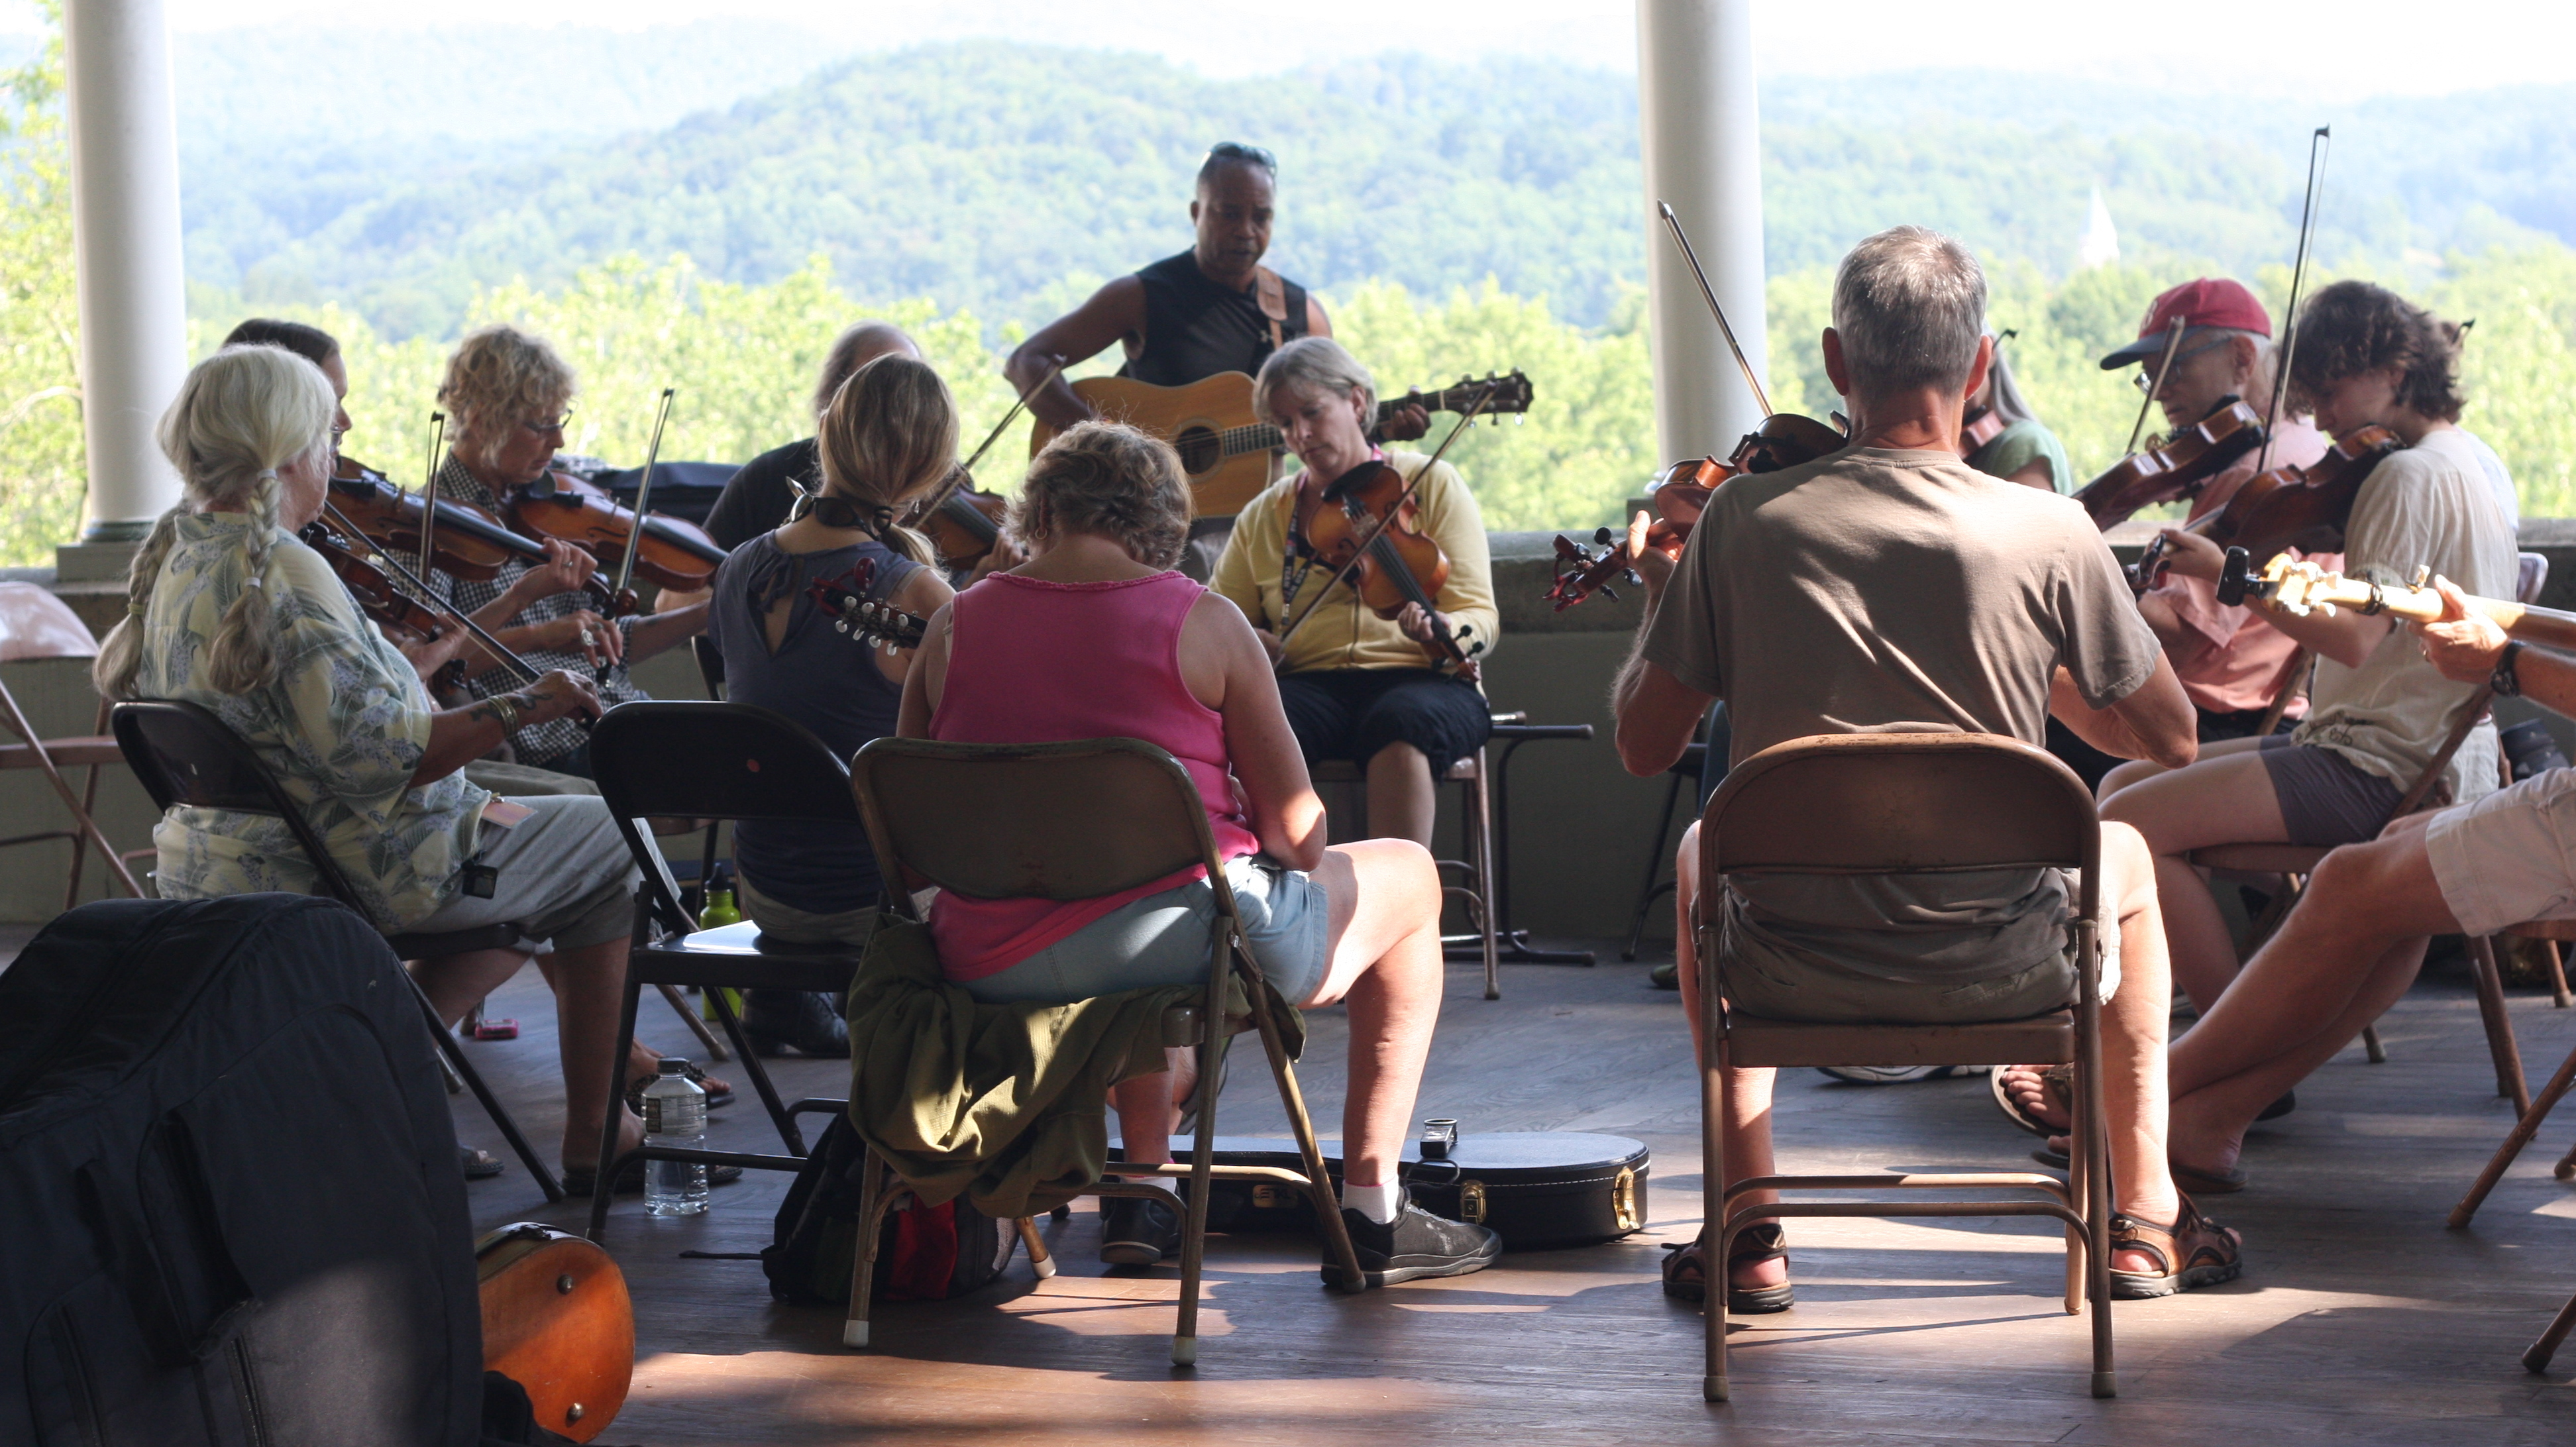 In West Virginia, A Band Camp Of Sorts Prizes Old-Time Music